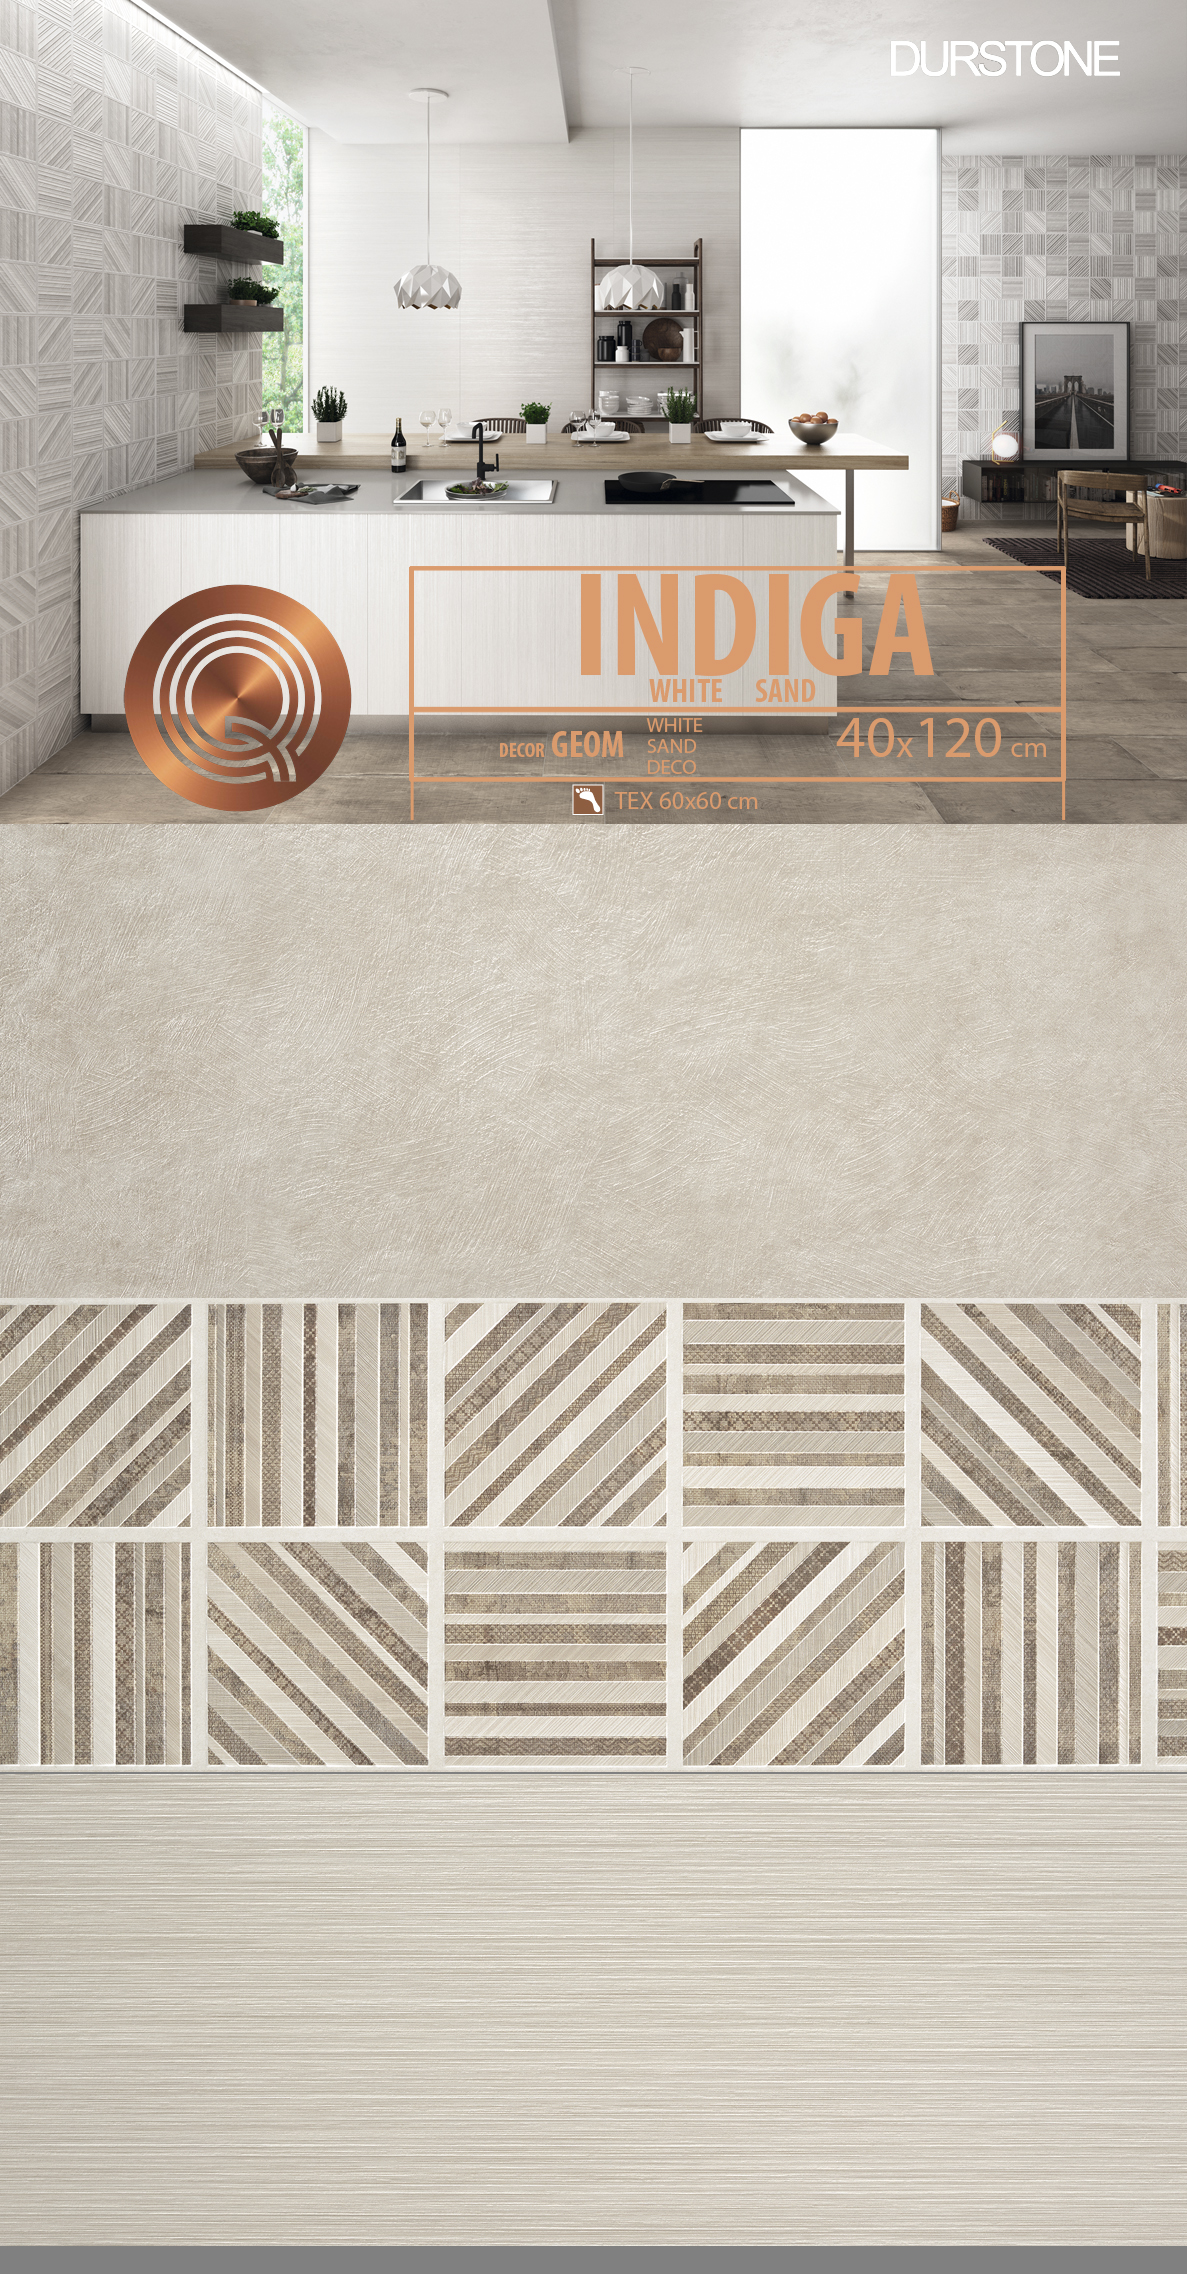 6051 RV PANEL MIX INDIGA / GEOM / DECOR / LINES SAND Cod. 6051